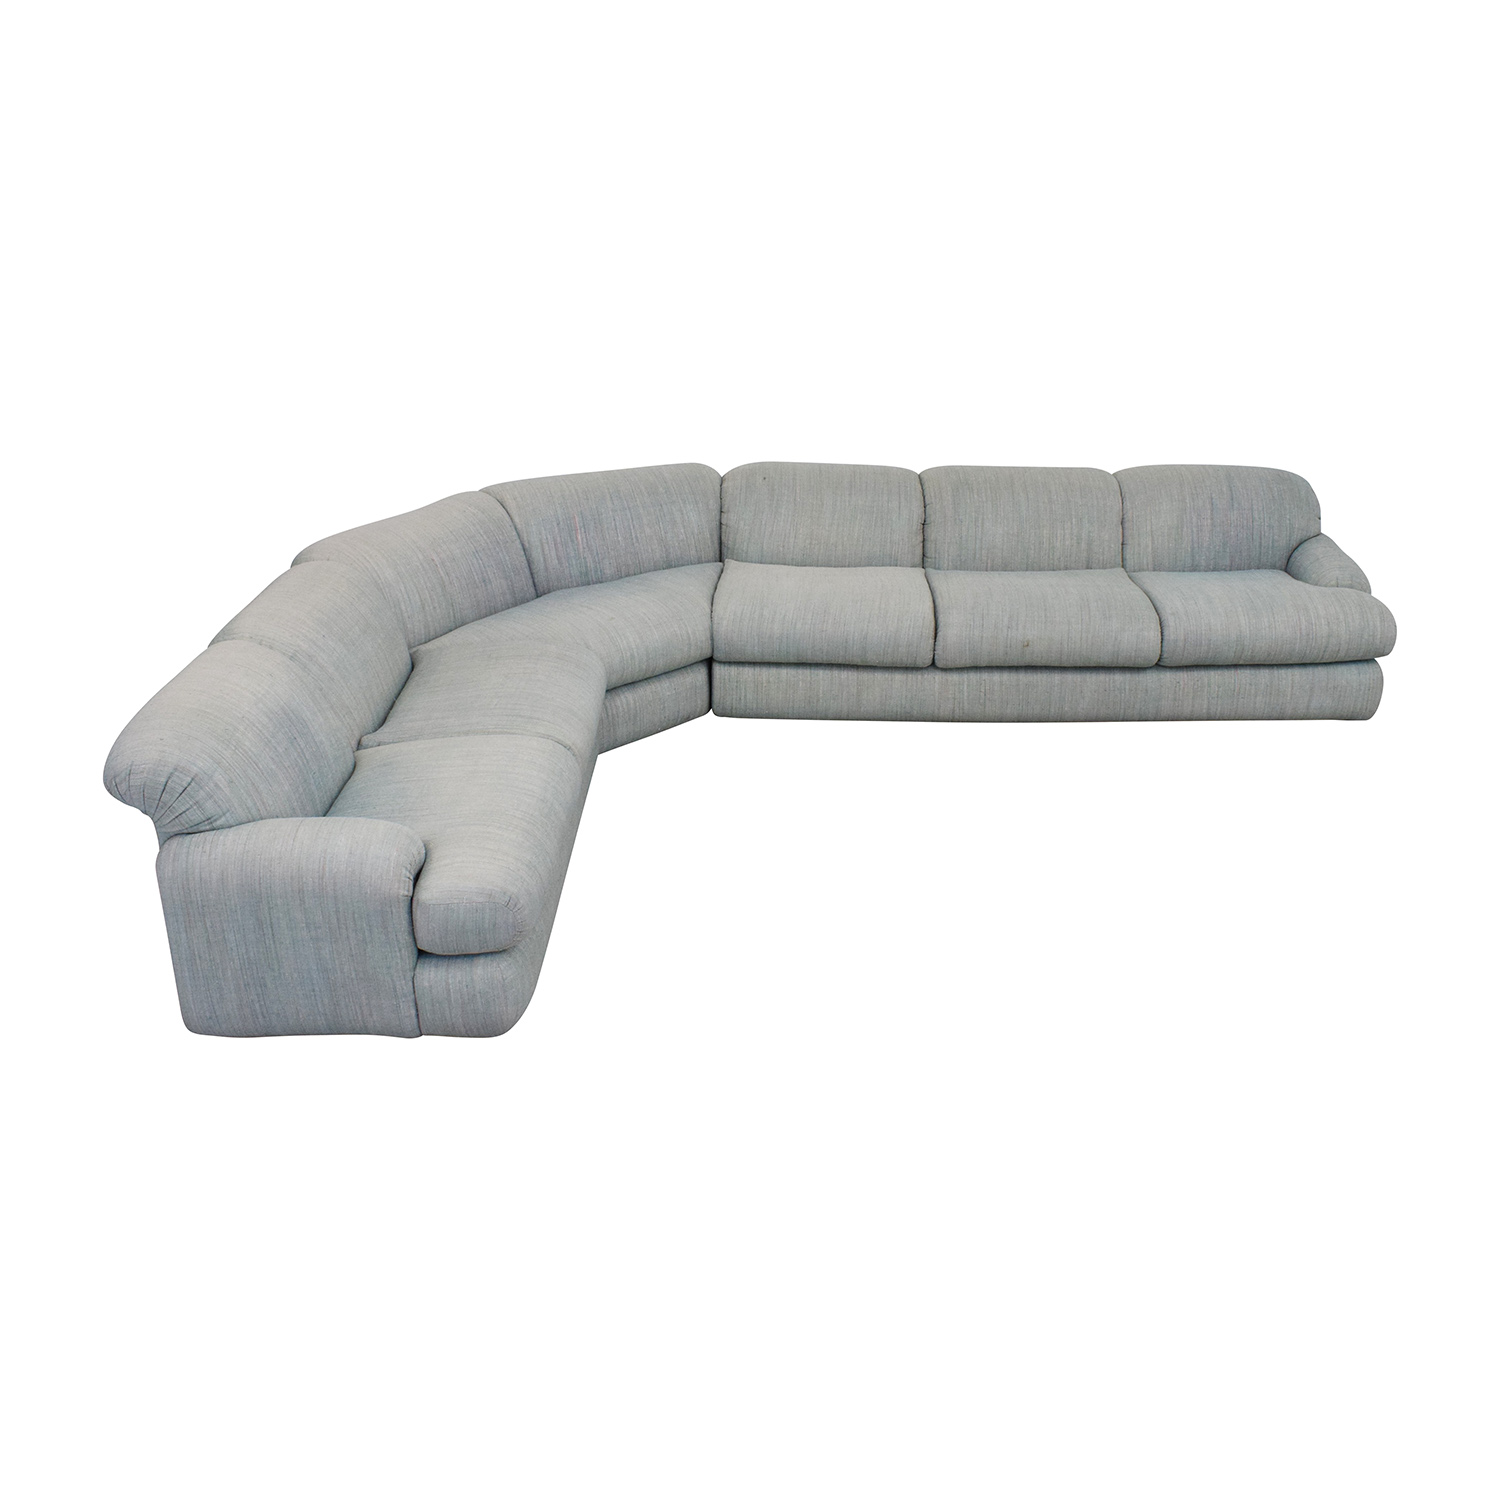 buy Preview Furniture David L. James Curved Corner Sectional Sofa Preview Furniture Sofas